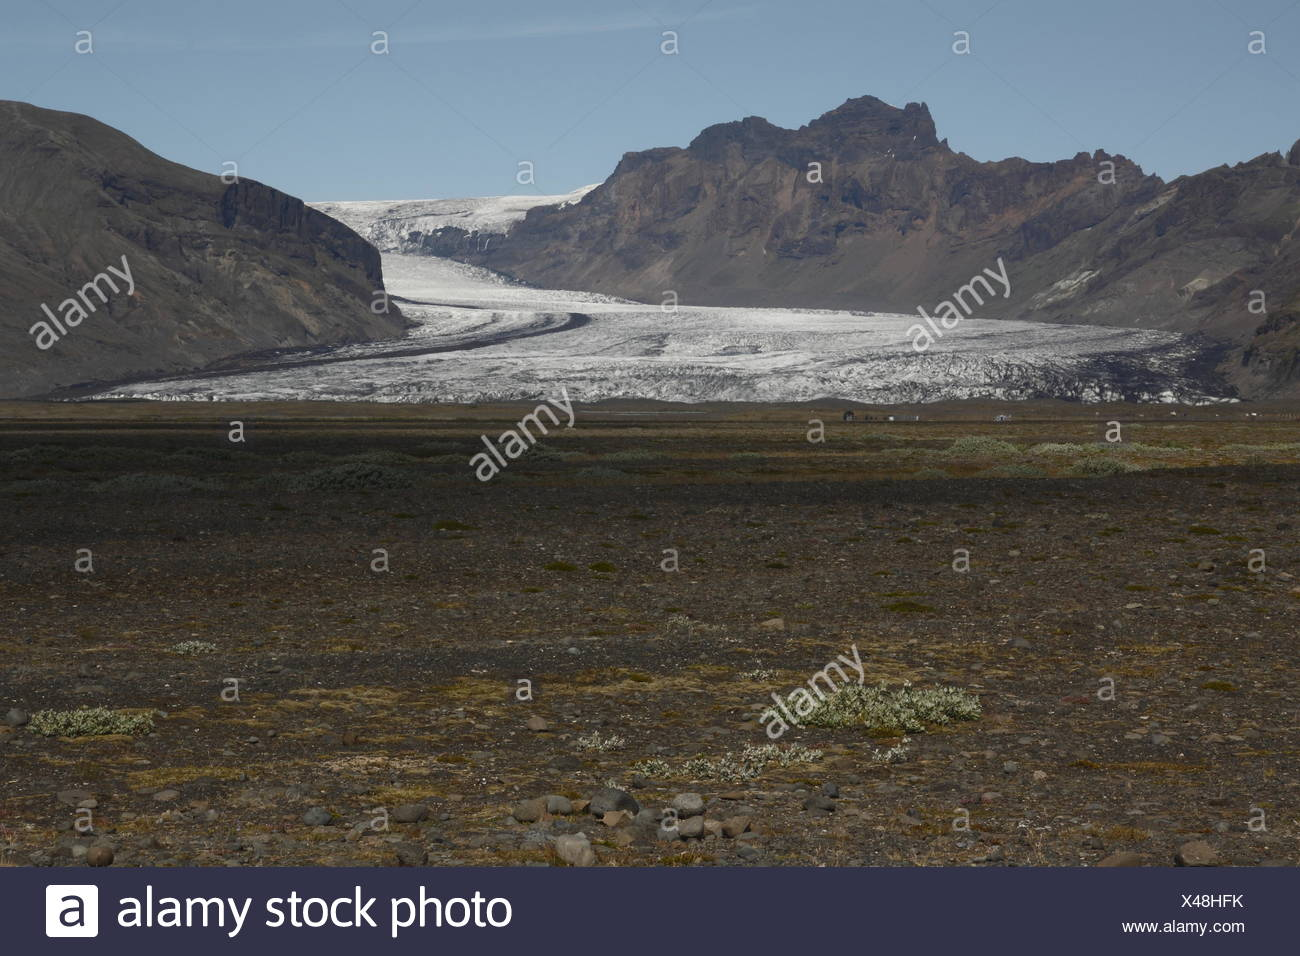 Skaftafellsjökull is one of the outlet glaciers (glacier tongues) of the Vatnajökull ice cap. Skaftafell - Stock Image